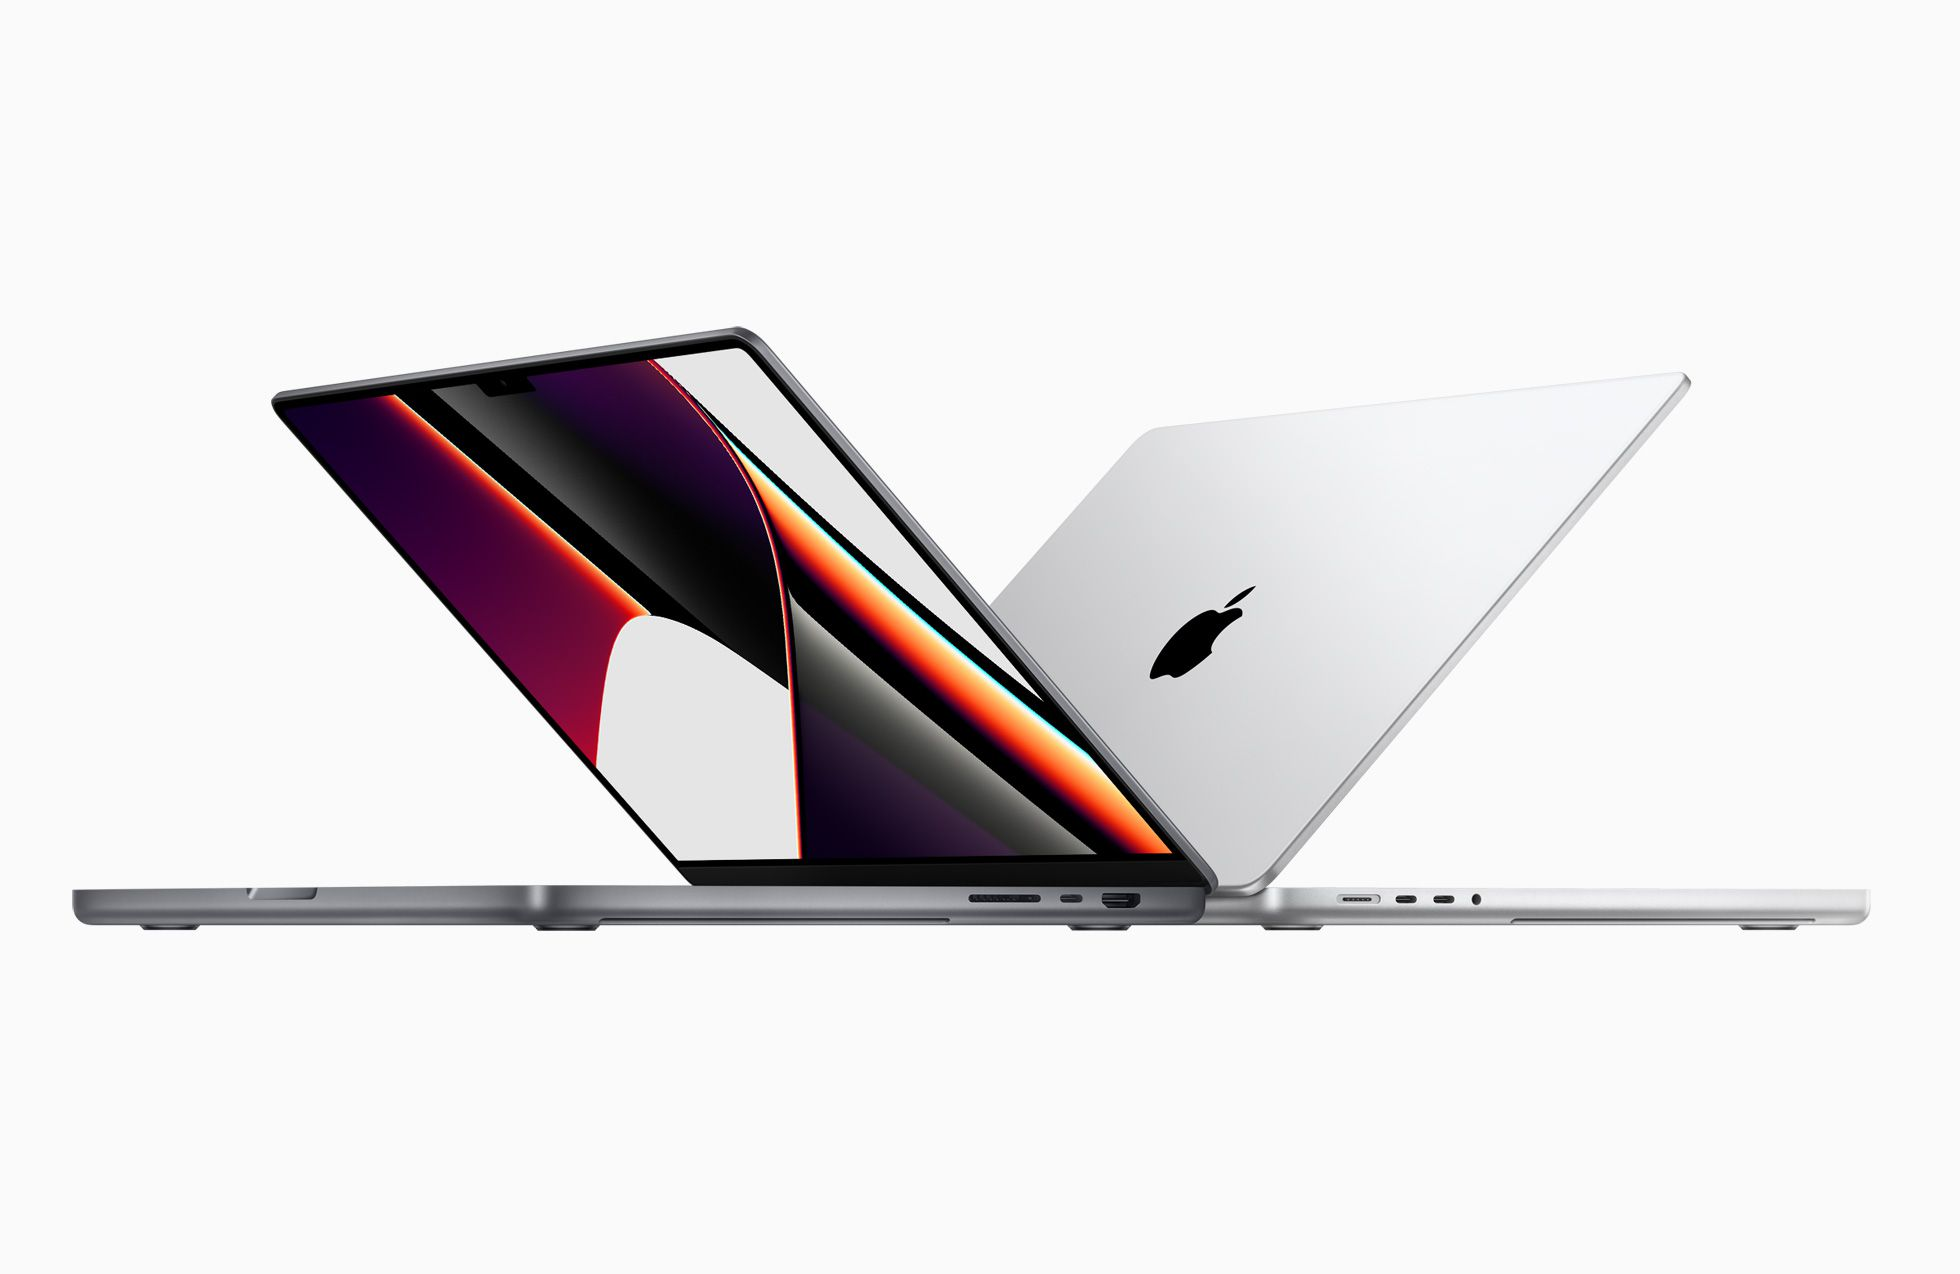 New 14-Inch and 16-Inch MacBook Pros Now 'Preparing to Ship'